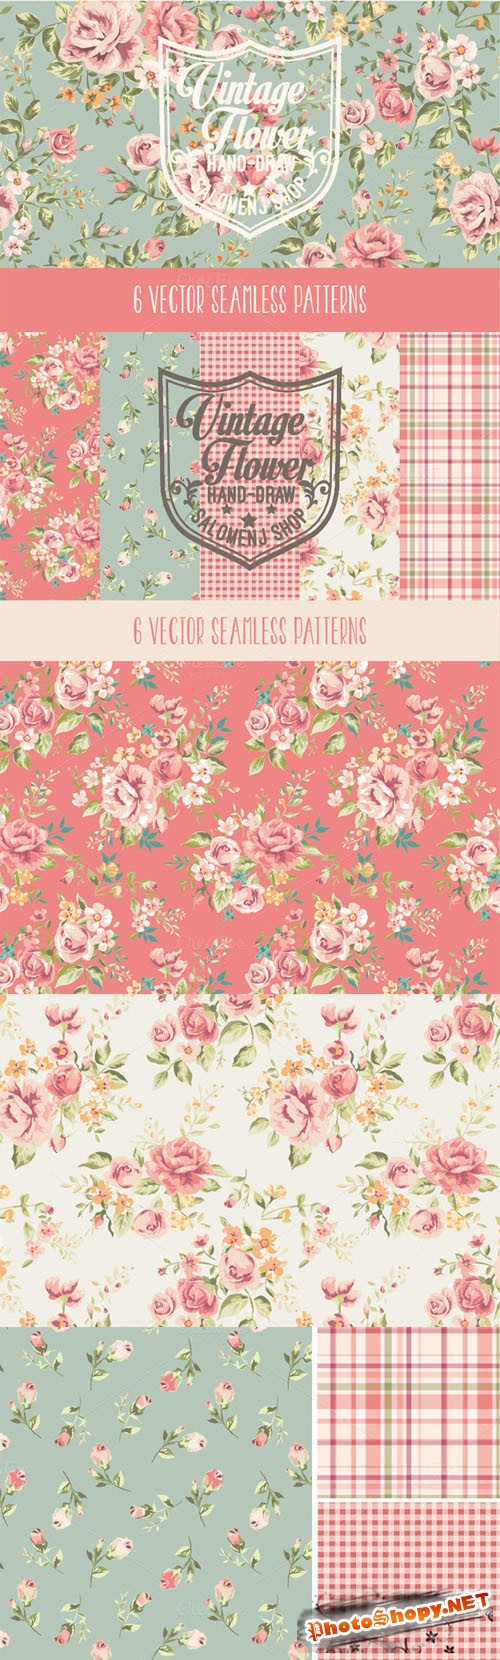 Creativemarket 64060 - Vintage seamless patterns Vol.1